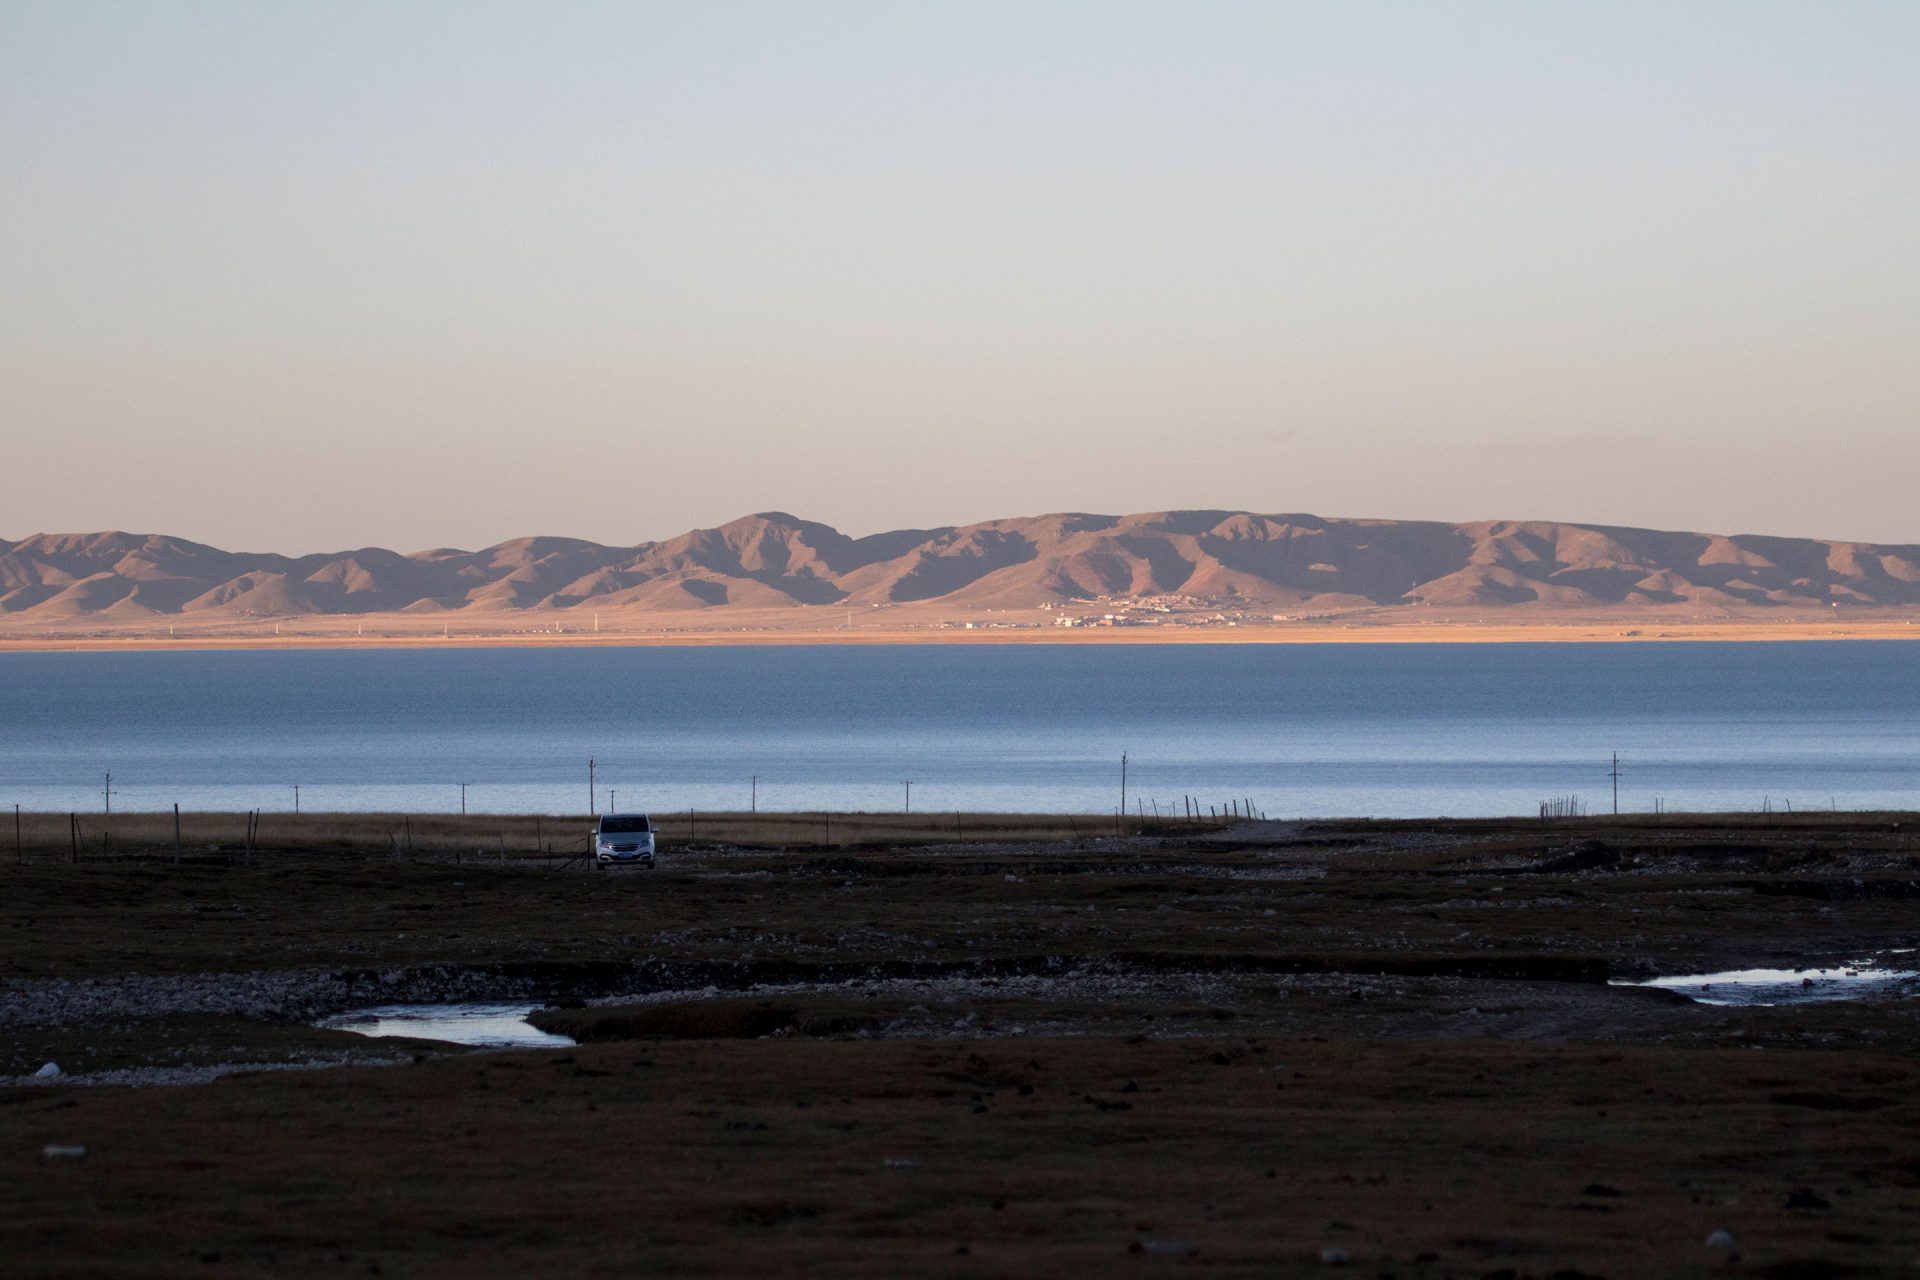 The valley in shadow with Qinghai Lake in the distance.